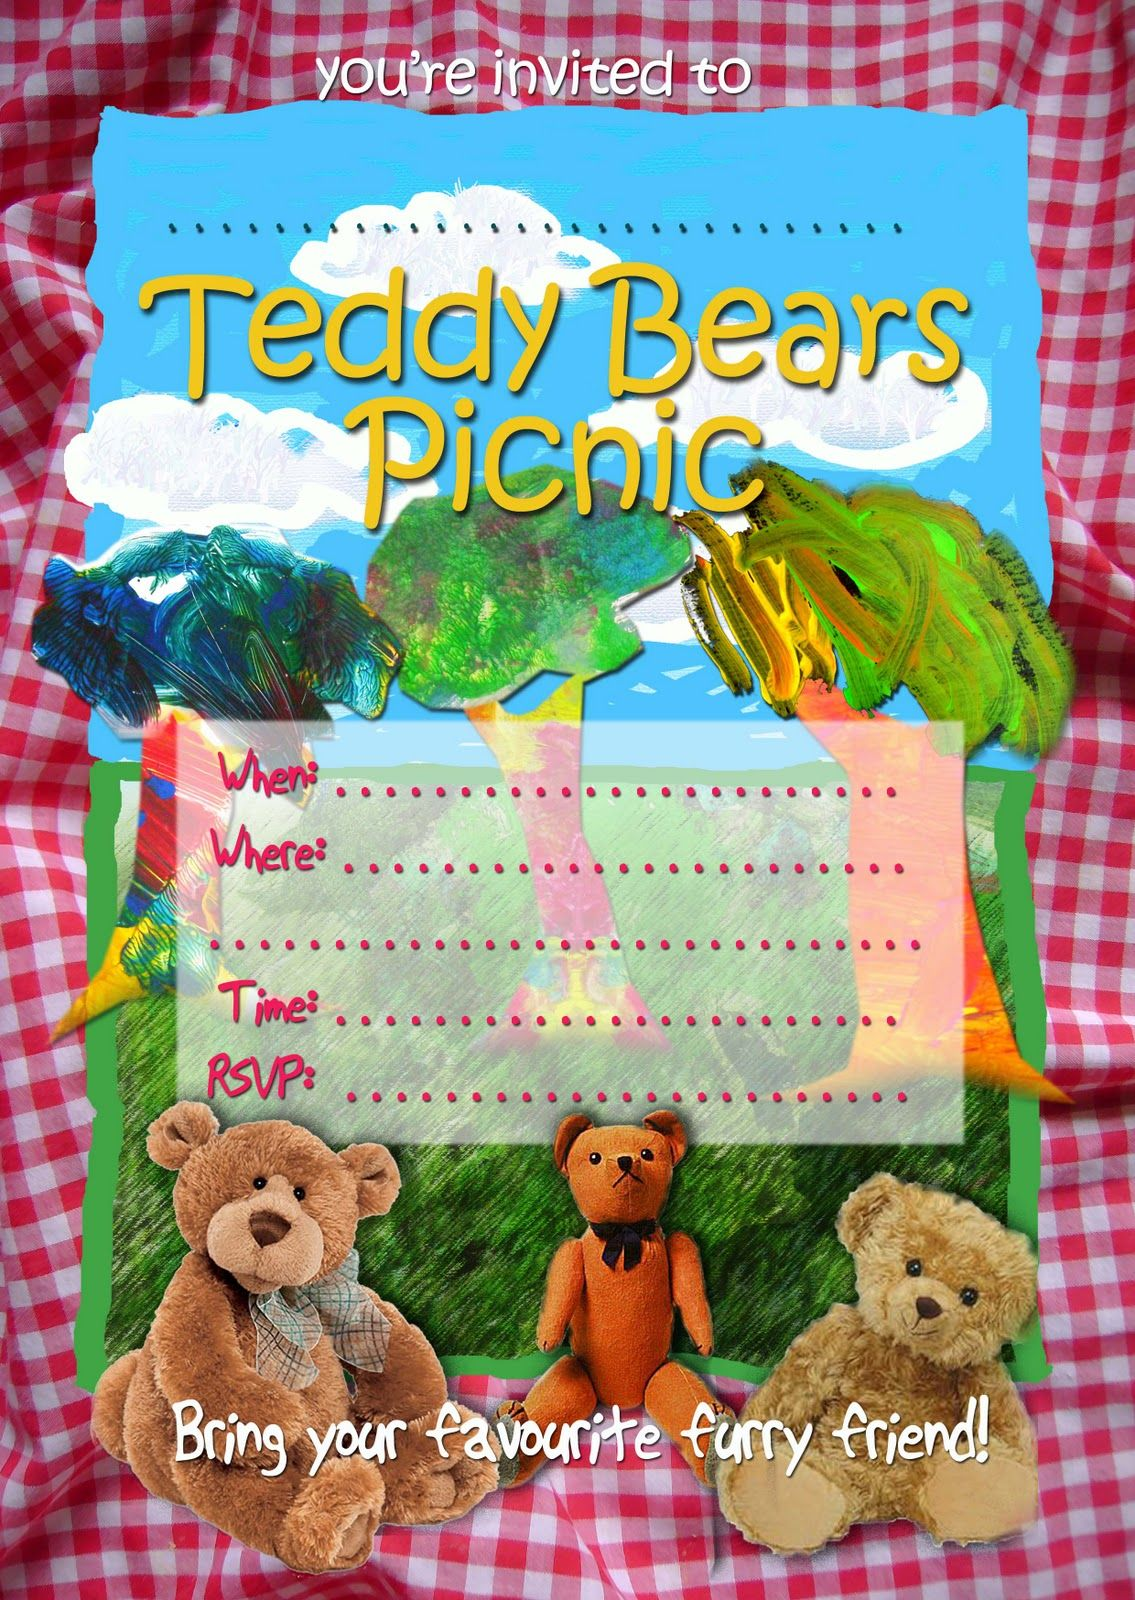 FREE Kids Party Invitations: Teddy Bears Picnic Invitation ...